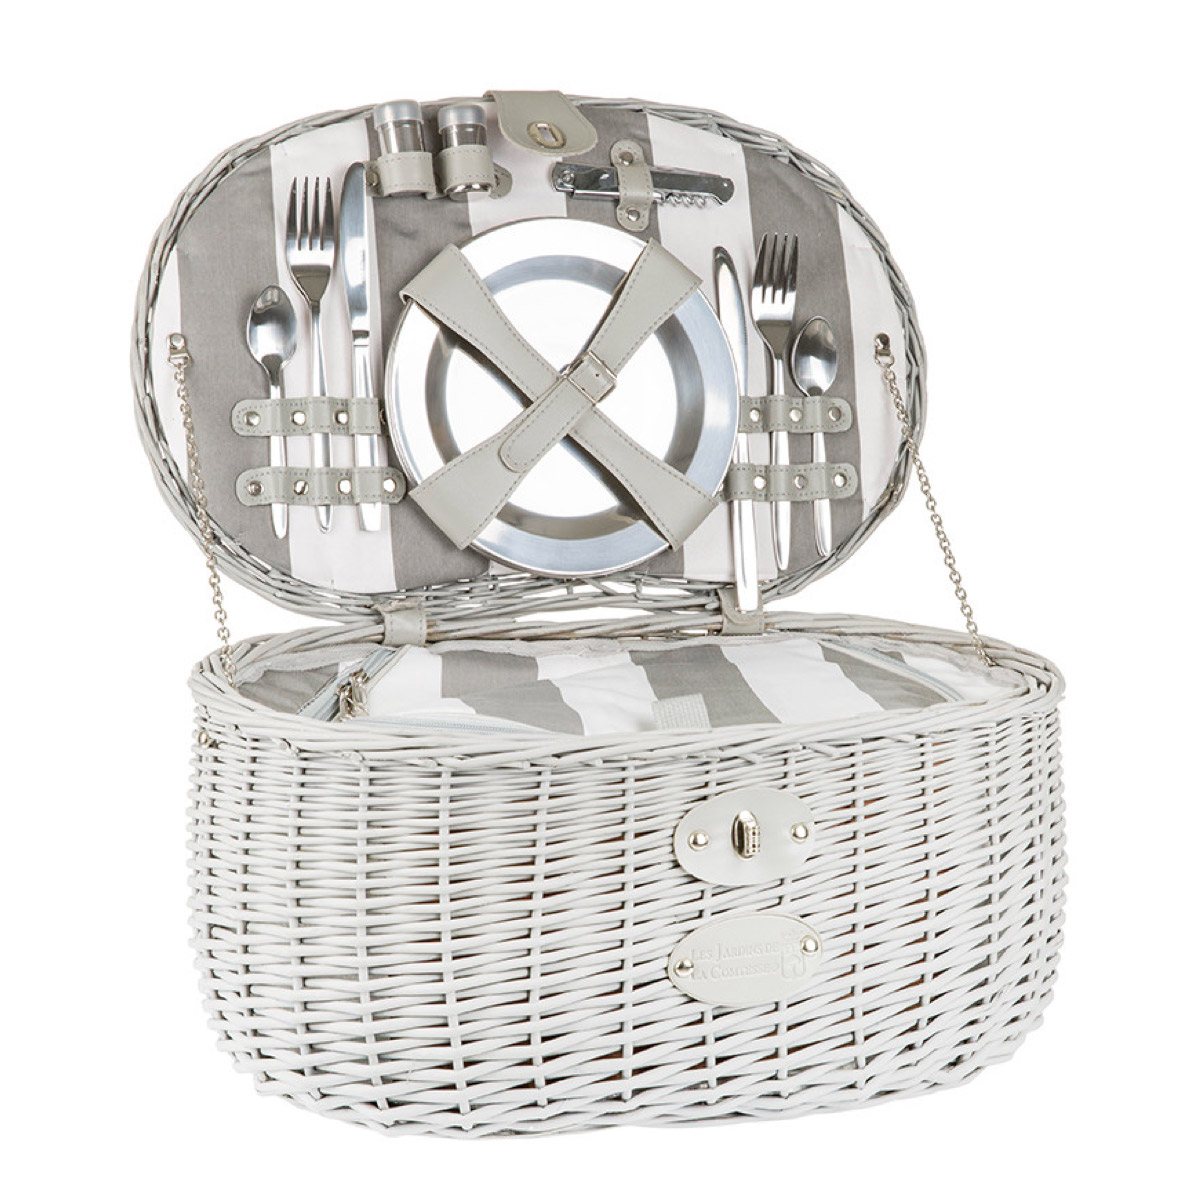 Vendome fully equipped picnic basket